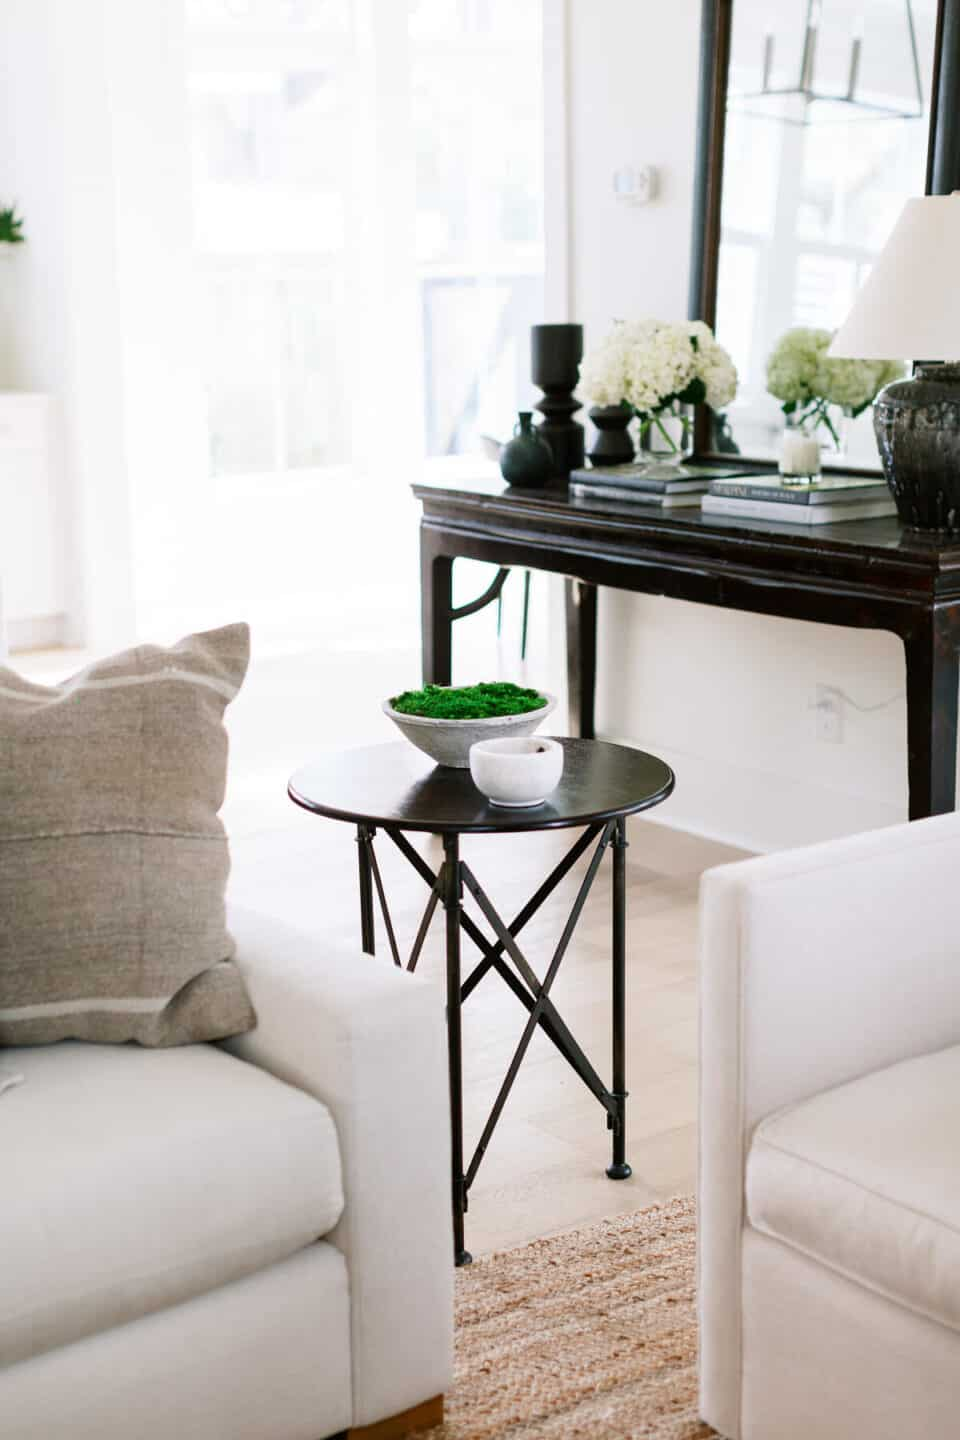 15 Gorgeous Table Lamps under $100